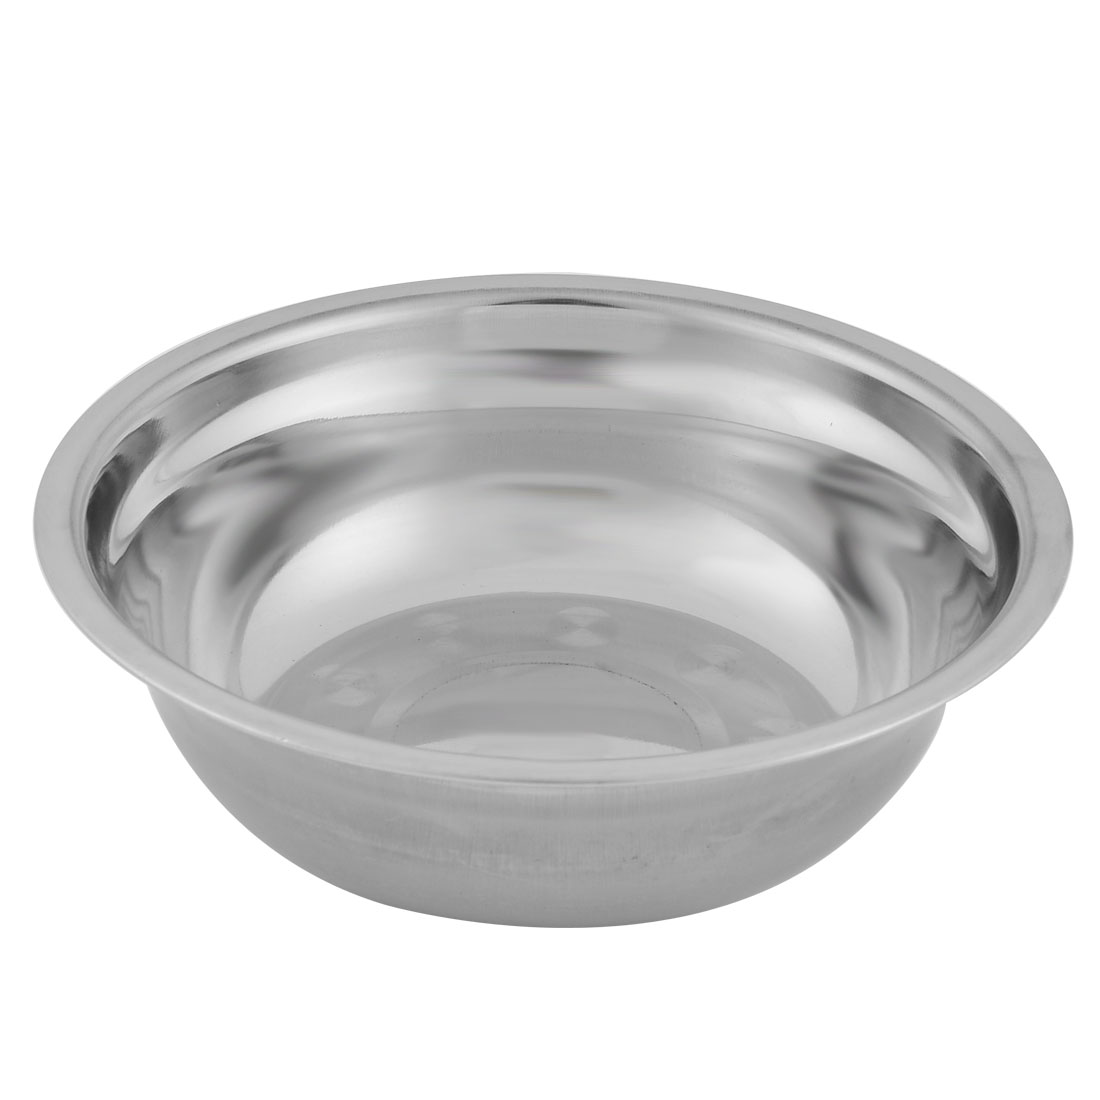 Household Kitchen Stainless Steel Fruit Soup Rice Dinner Bowl 19cm Diameter Silver Tone